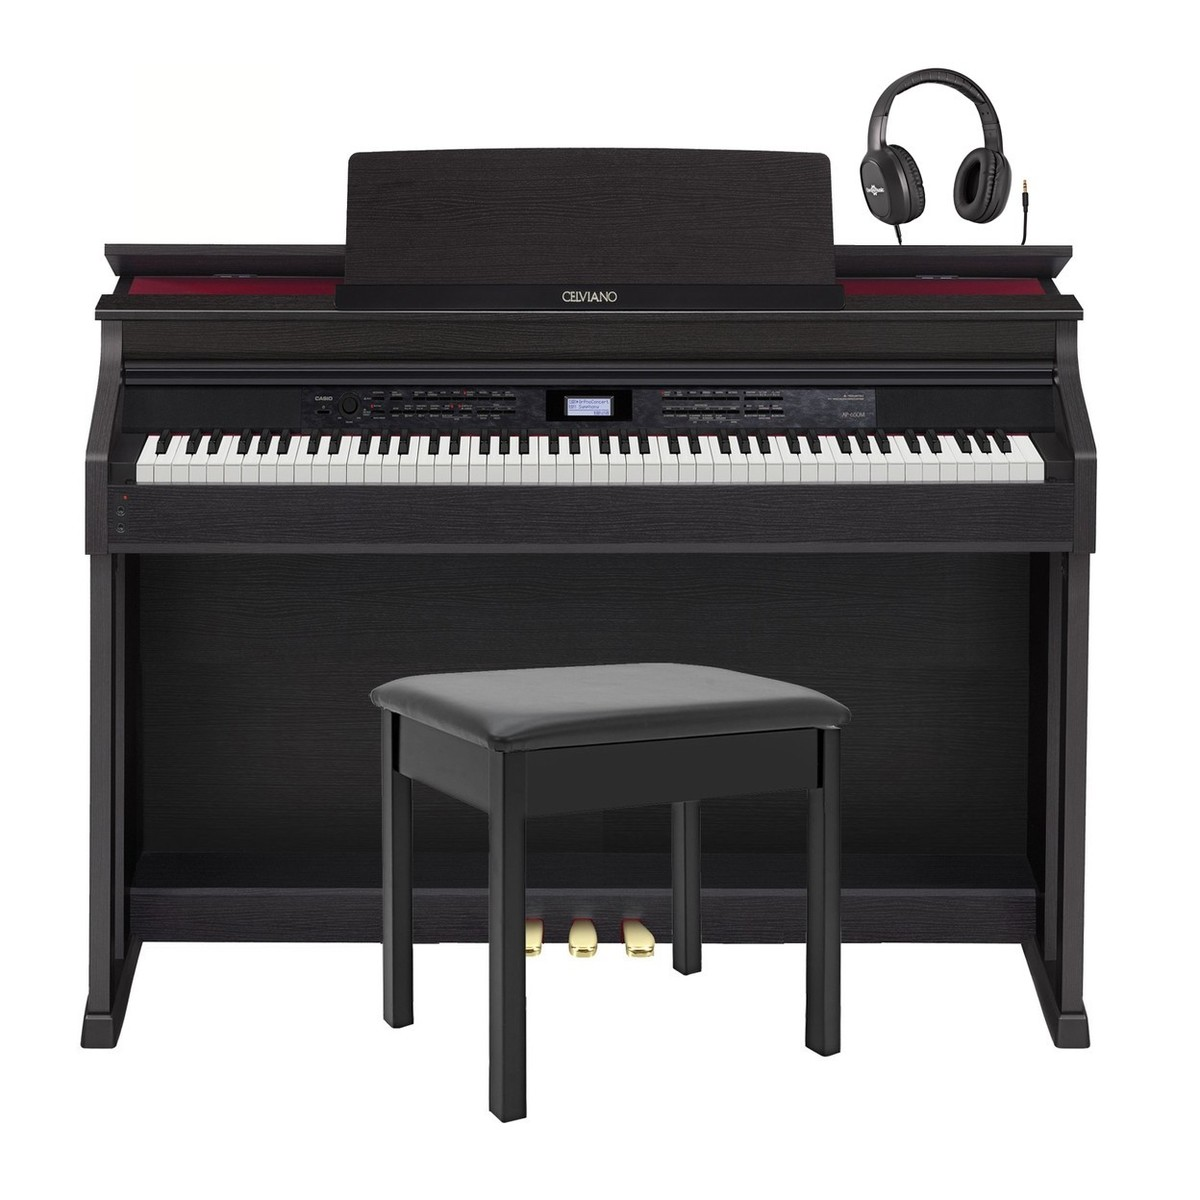 casio celviano ap 650 digital piano with stool and headphones at gear4music. Black Bedroom Furniture Sets. Home Design Ideas